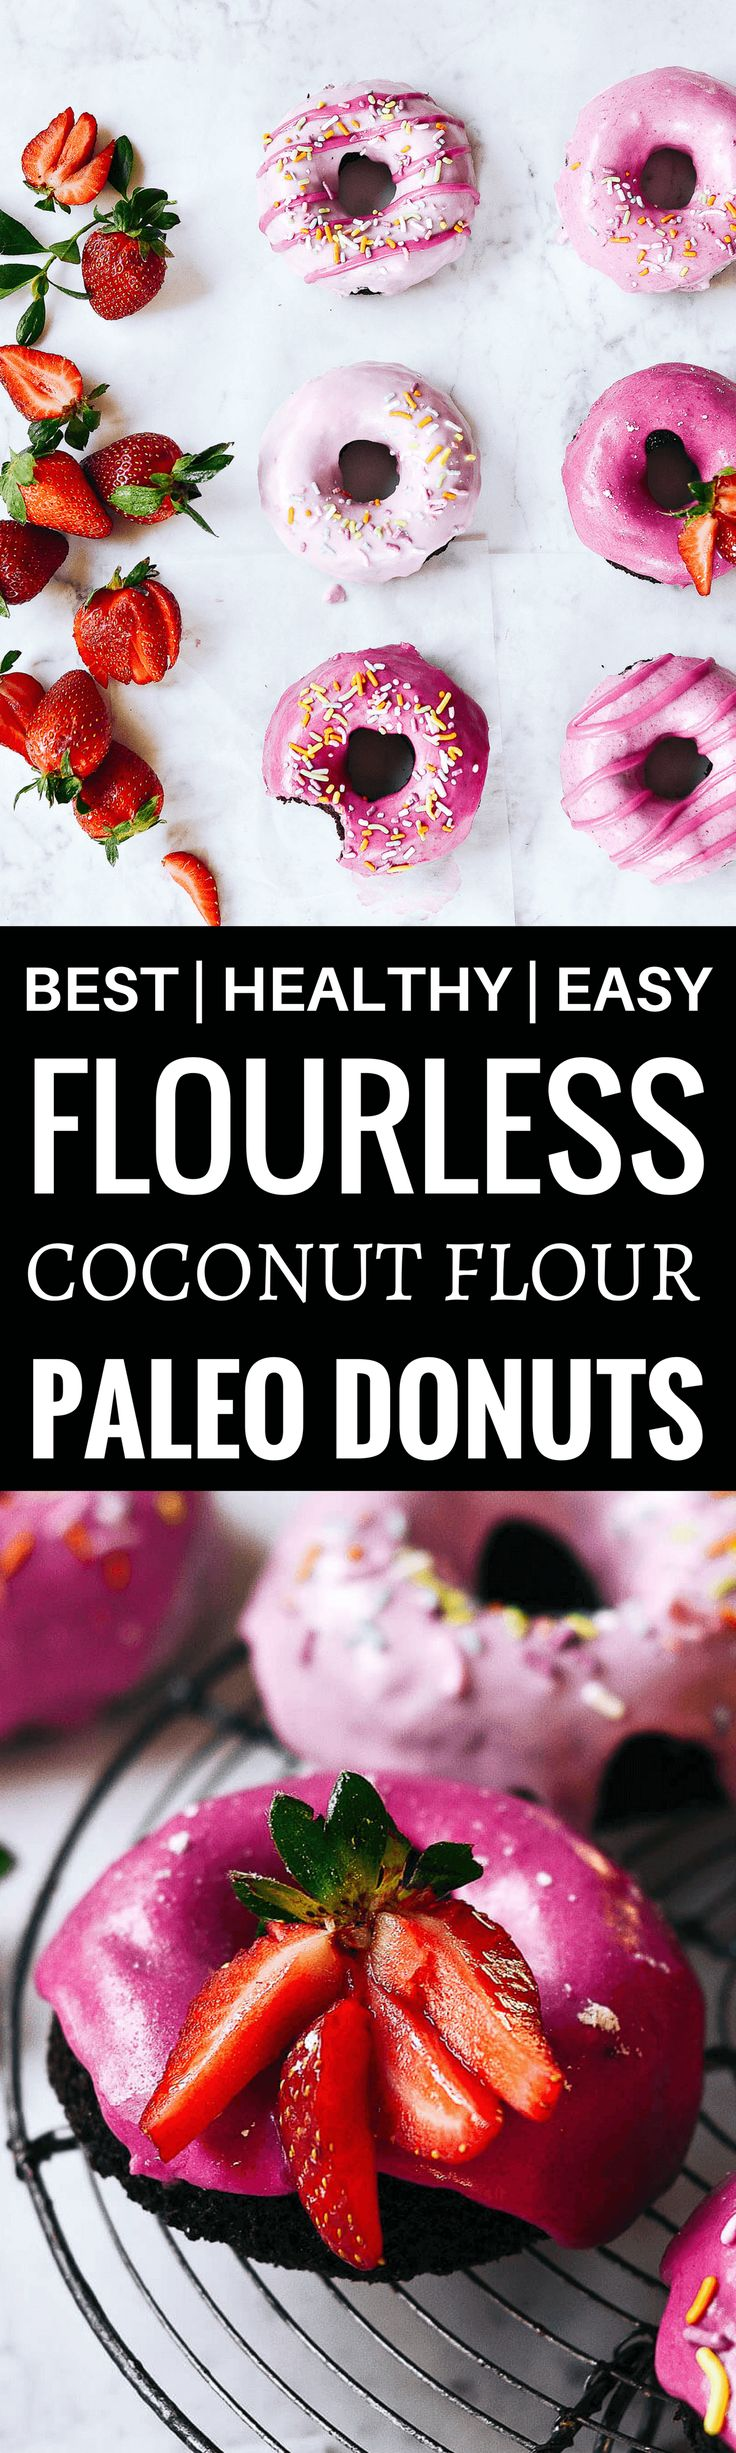 5 Minute paleo brownie doughnuts! These cake like doughnuts are topped with a beautiful pink frosting made from beets! Sugar free brownie doughnuts.